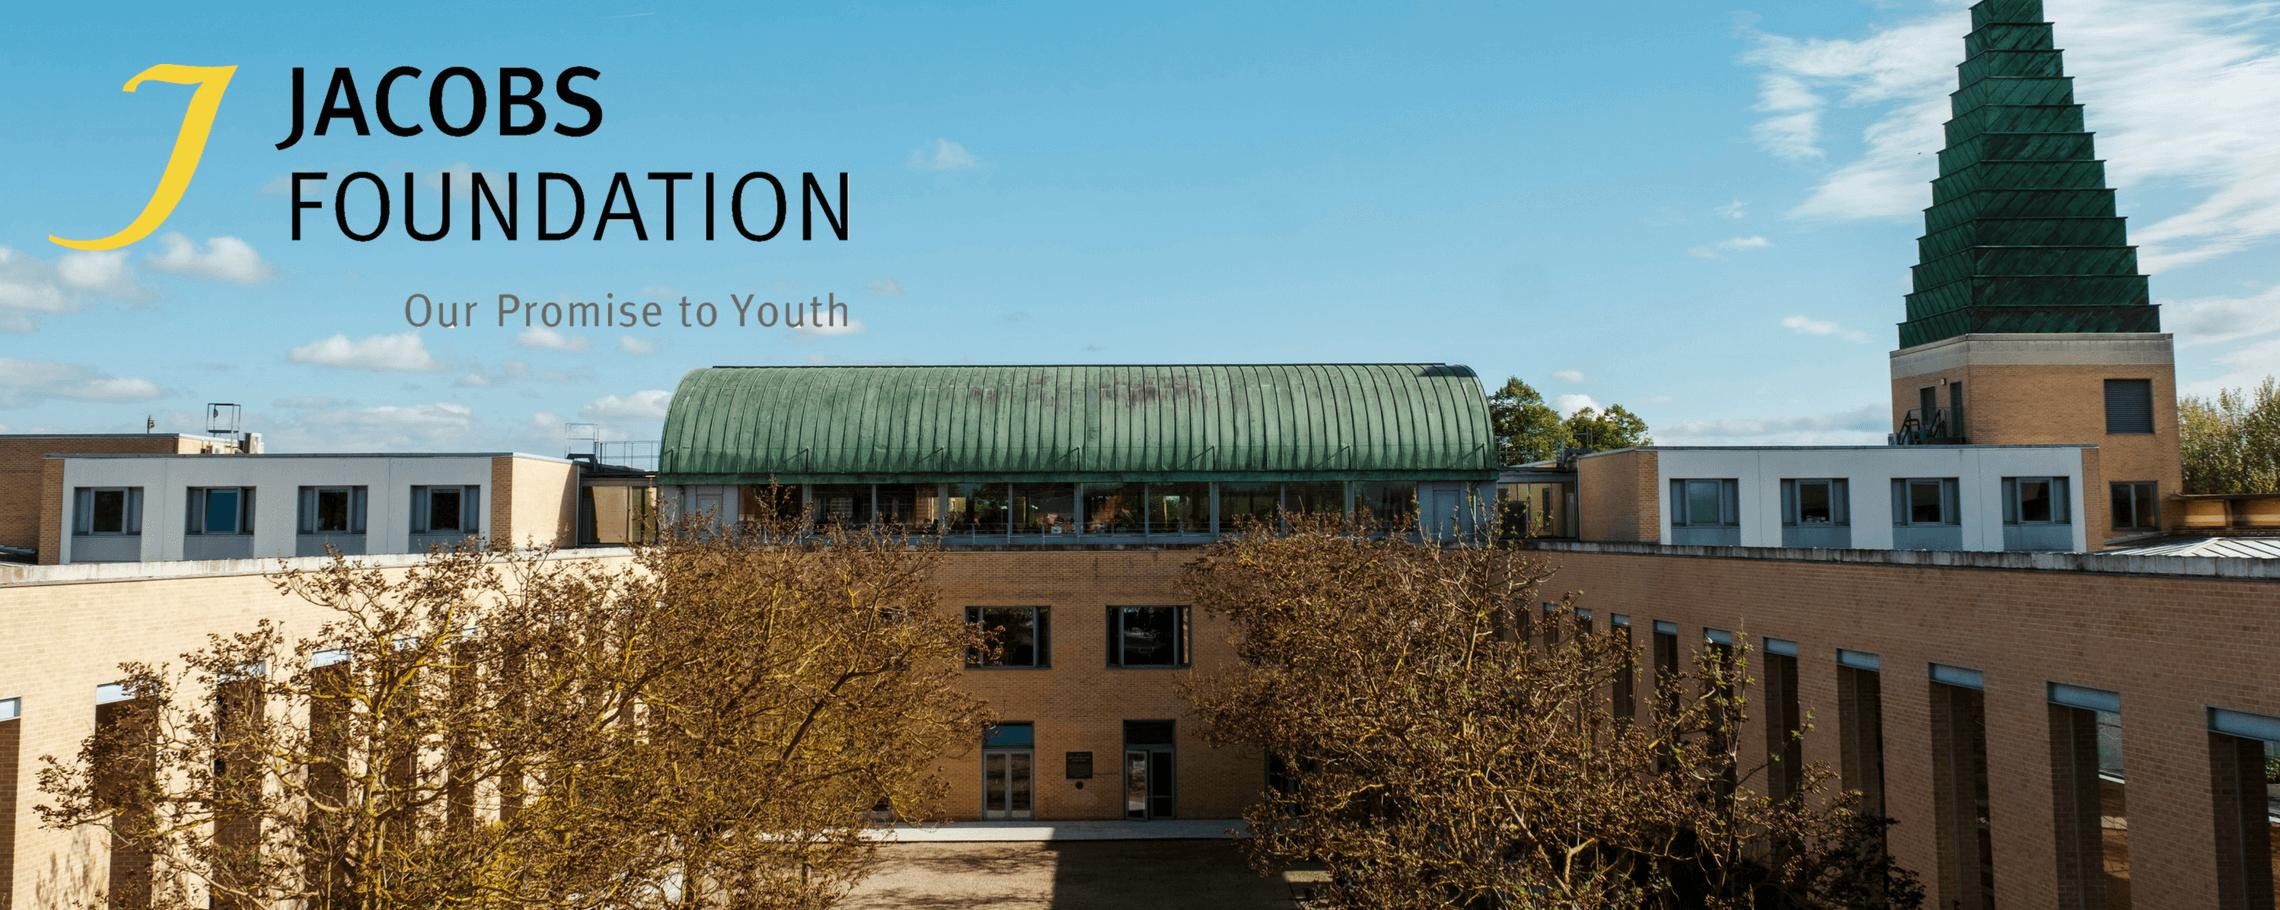 2020 Jacobs Structure Scholarships in youth and kid advancement for research study at the University of Oxford (Moneyed)